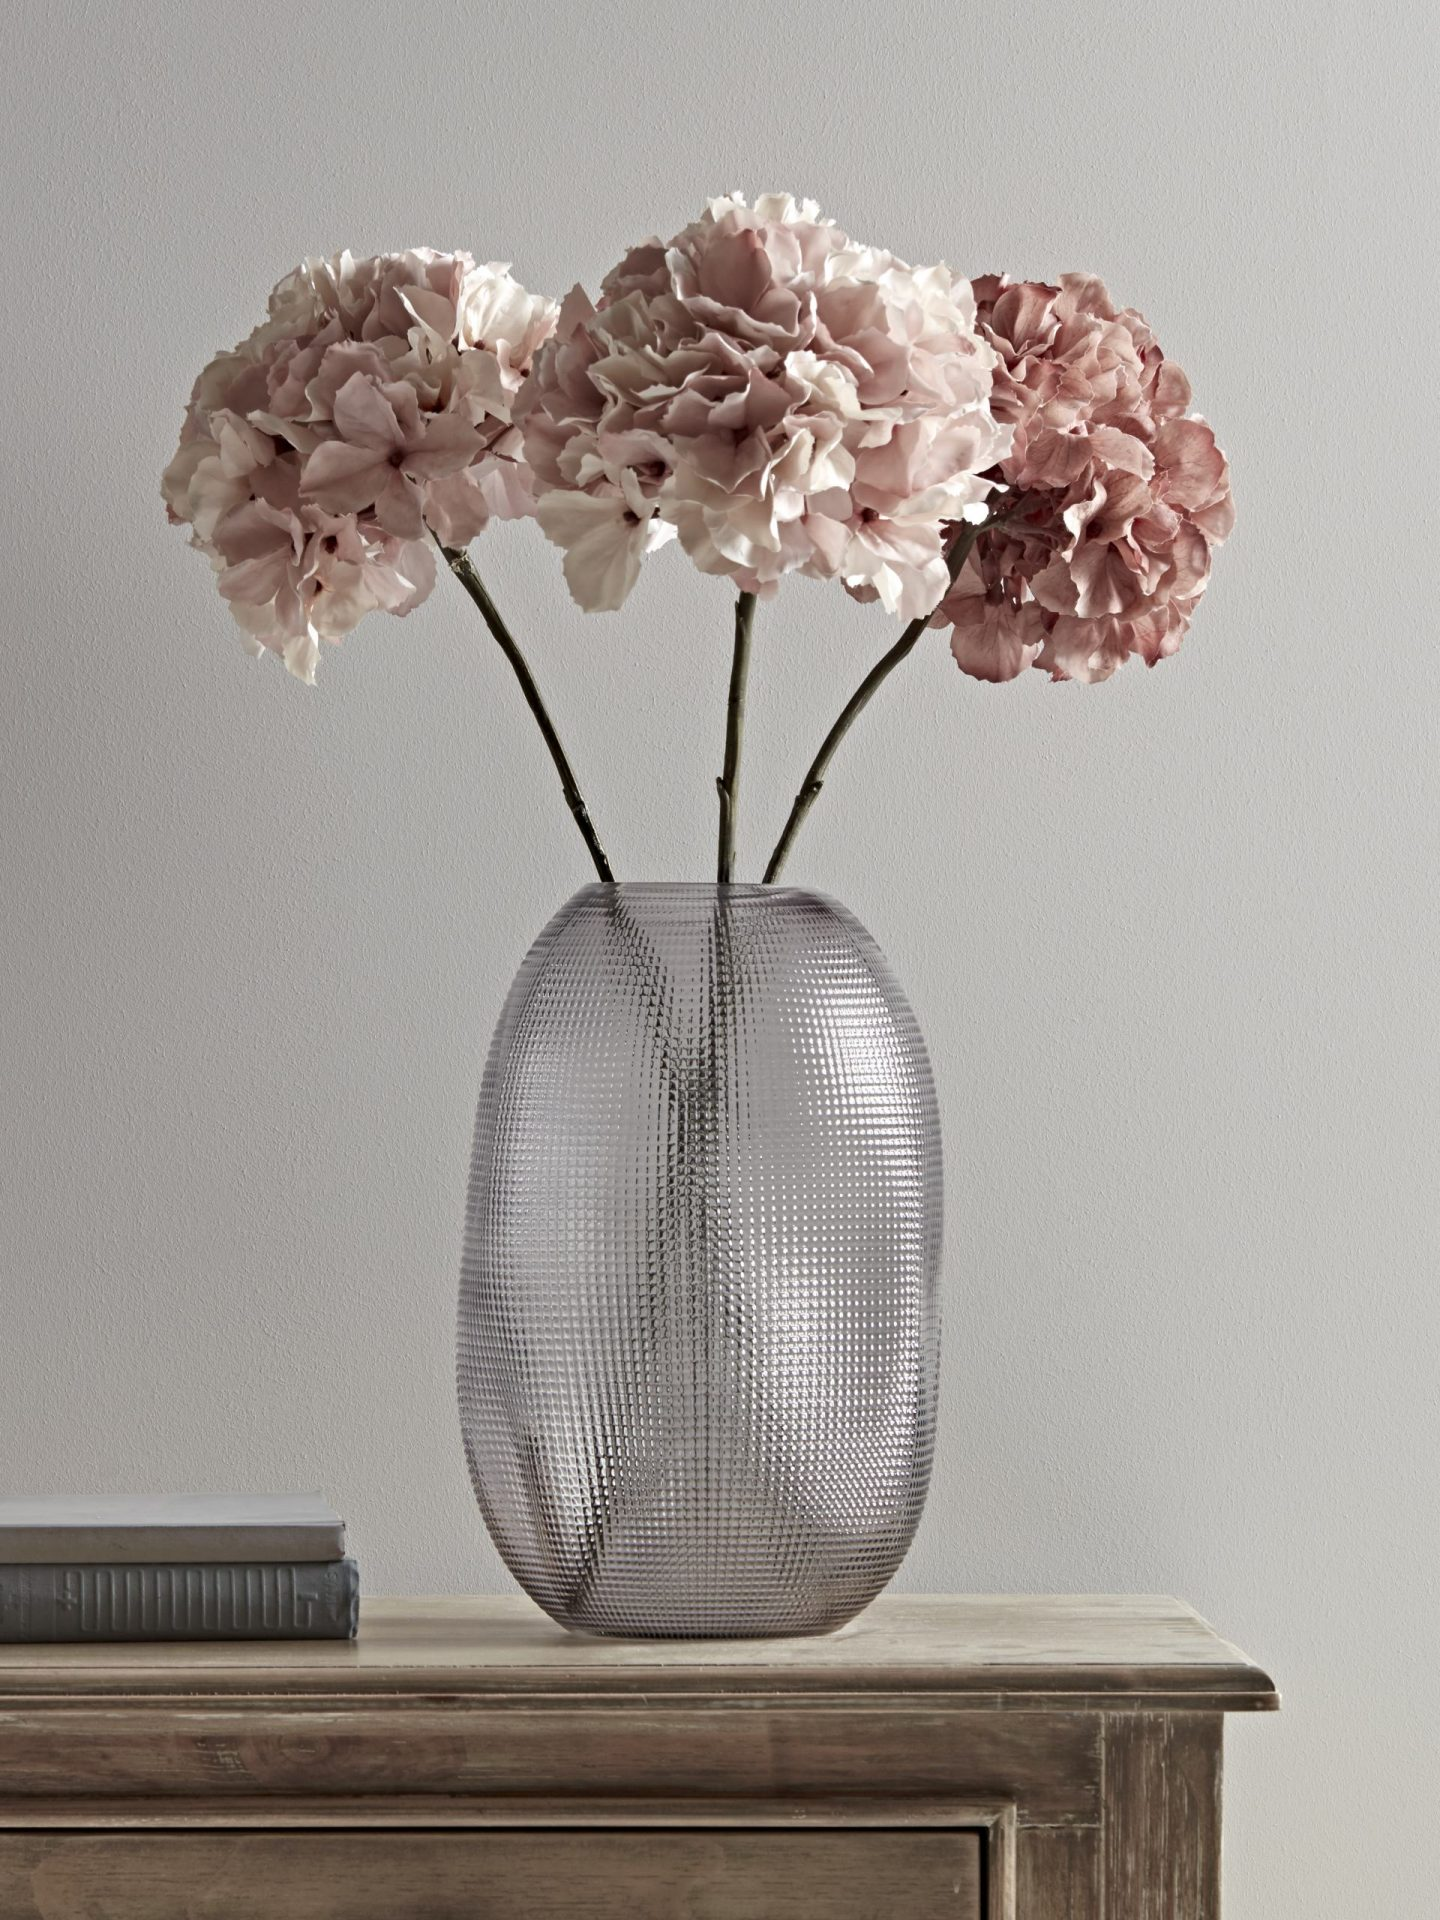 Textured glass vase and three faux hydrangeas from Cox and Cox.